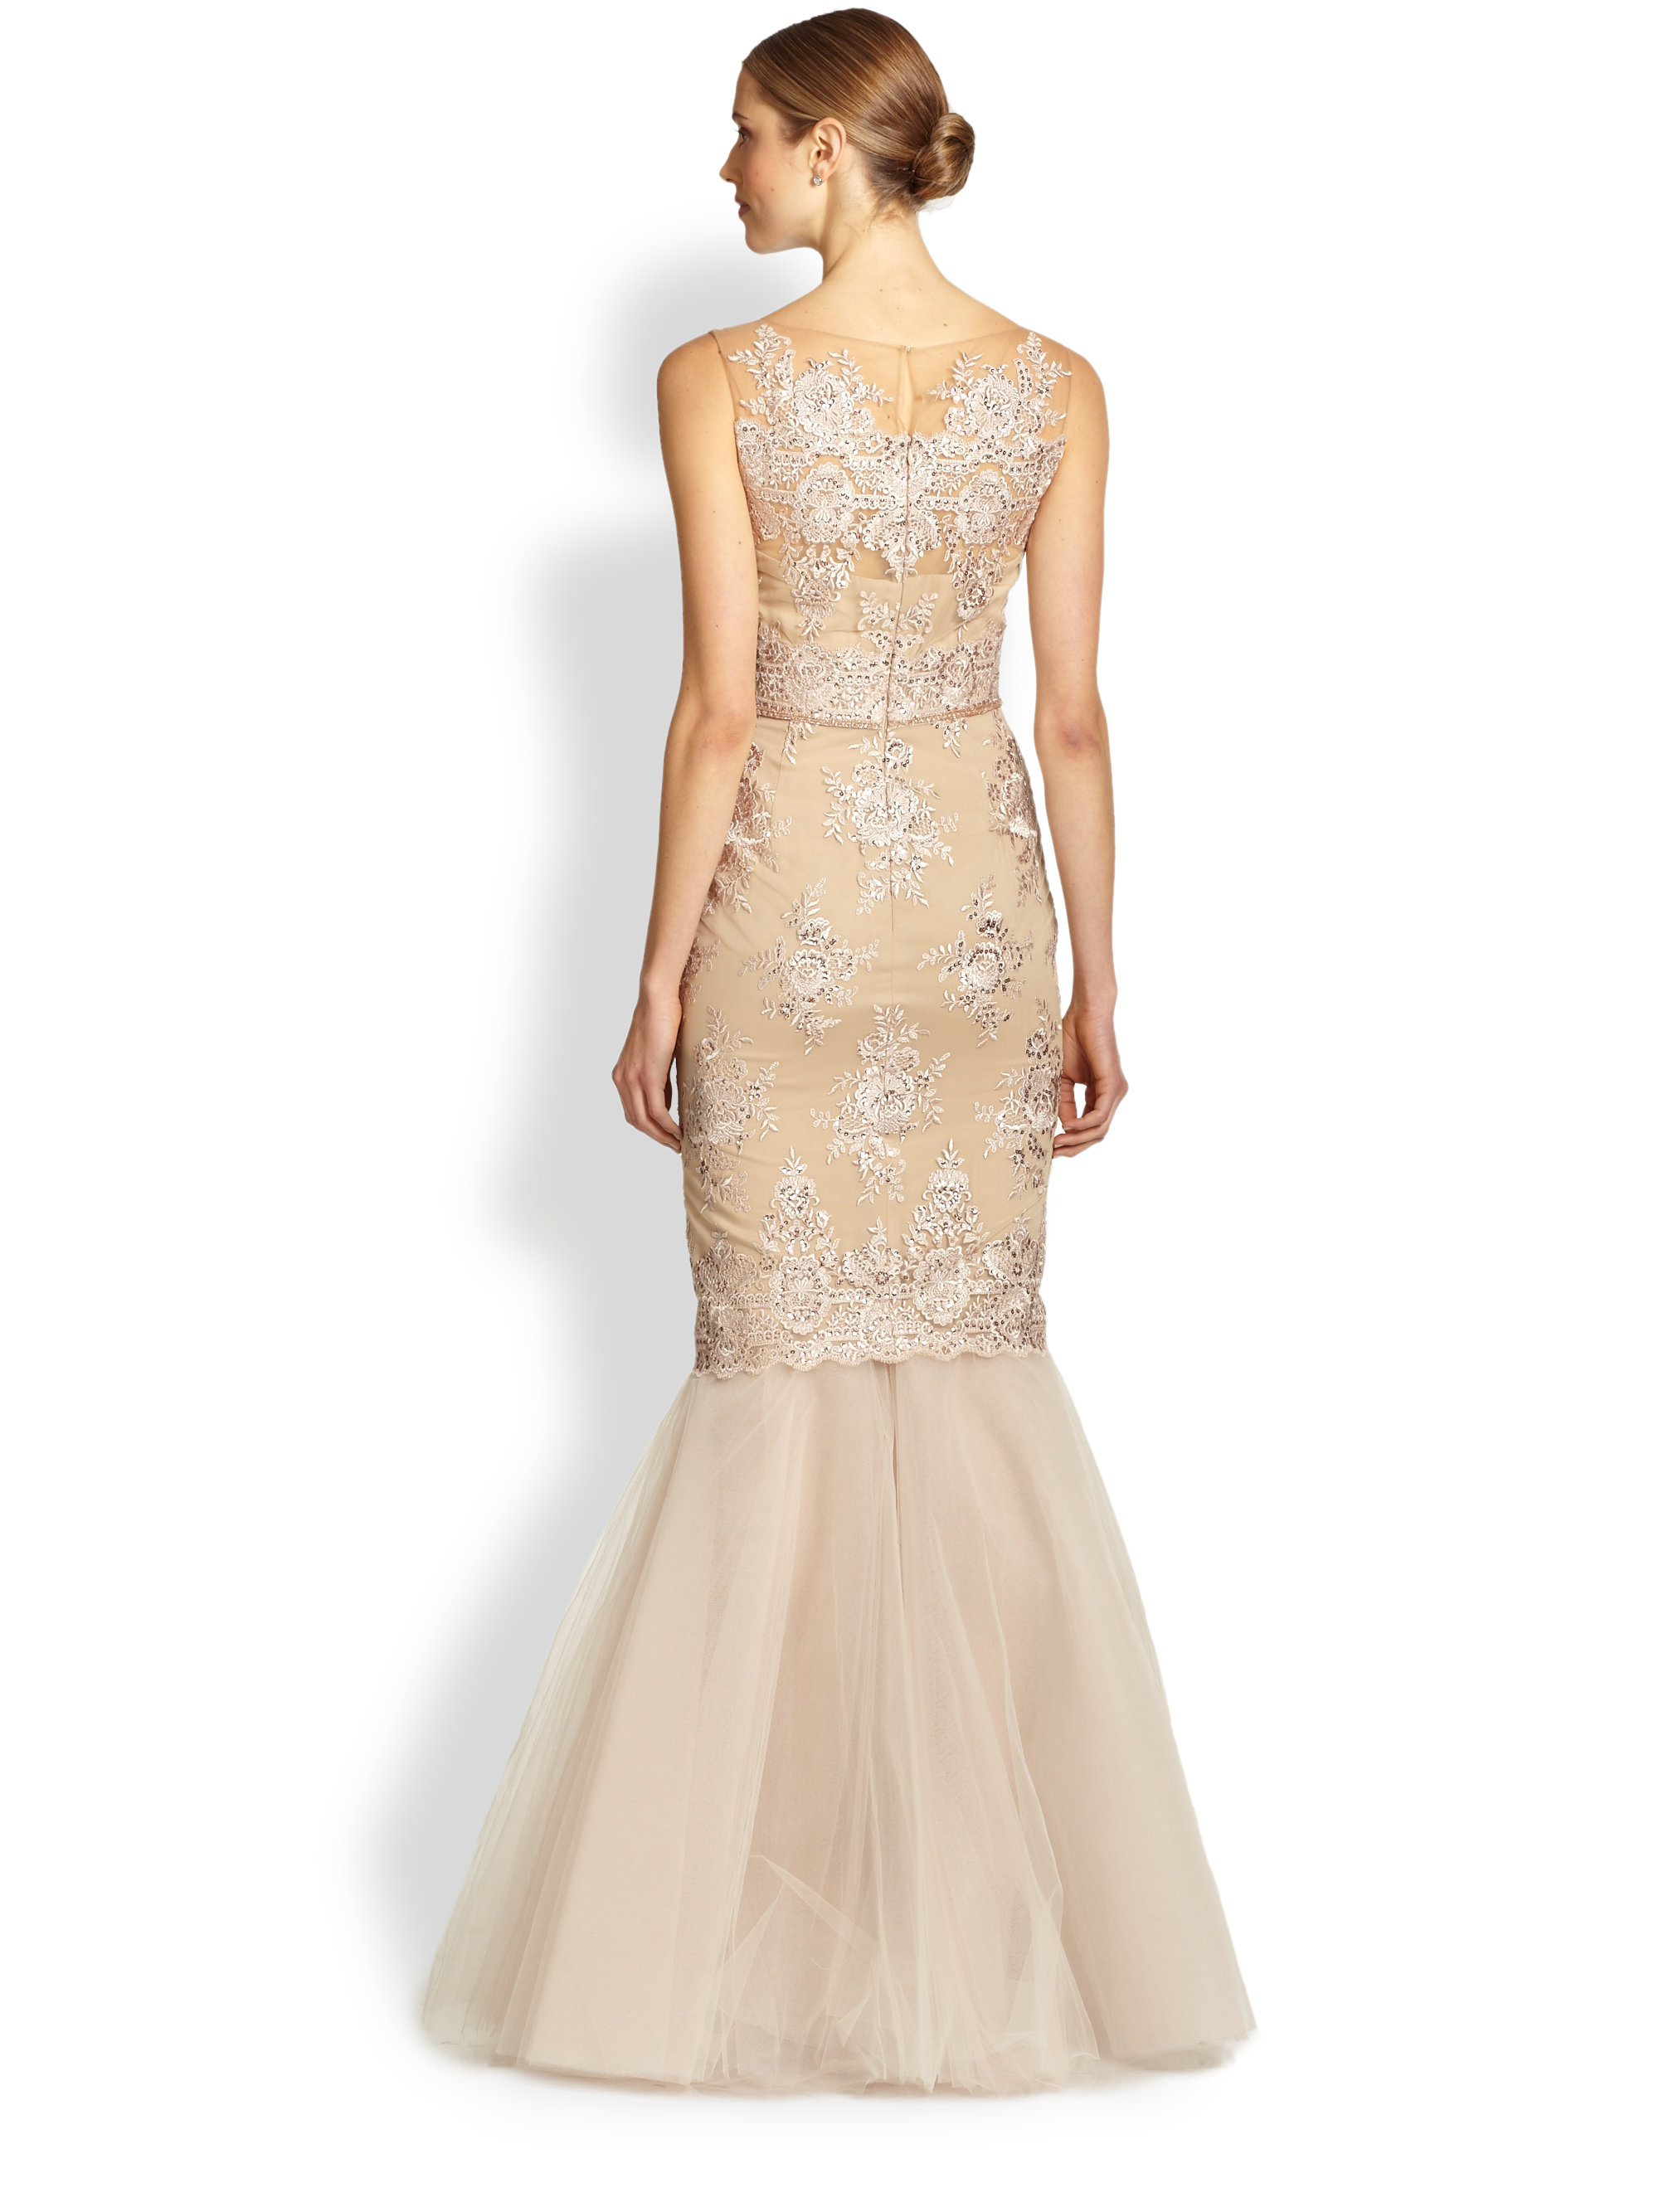 Notte by marchesa Re Embroidered Lace & Tulle Mermaid Gown